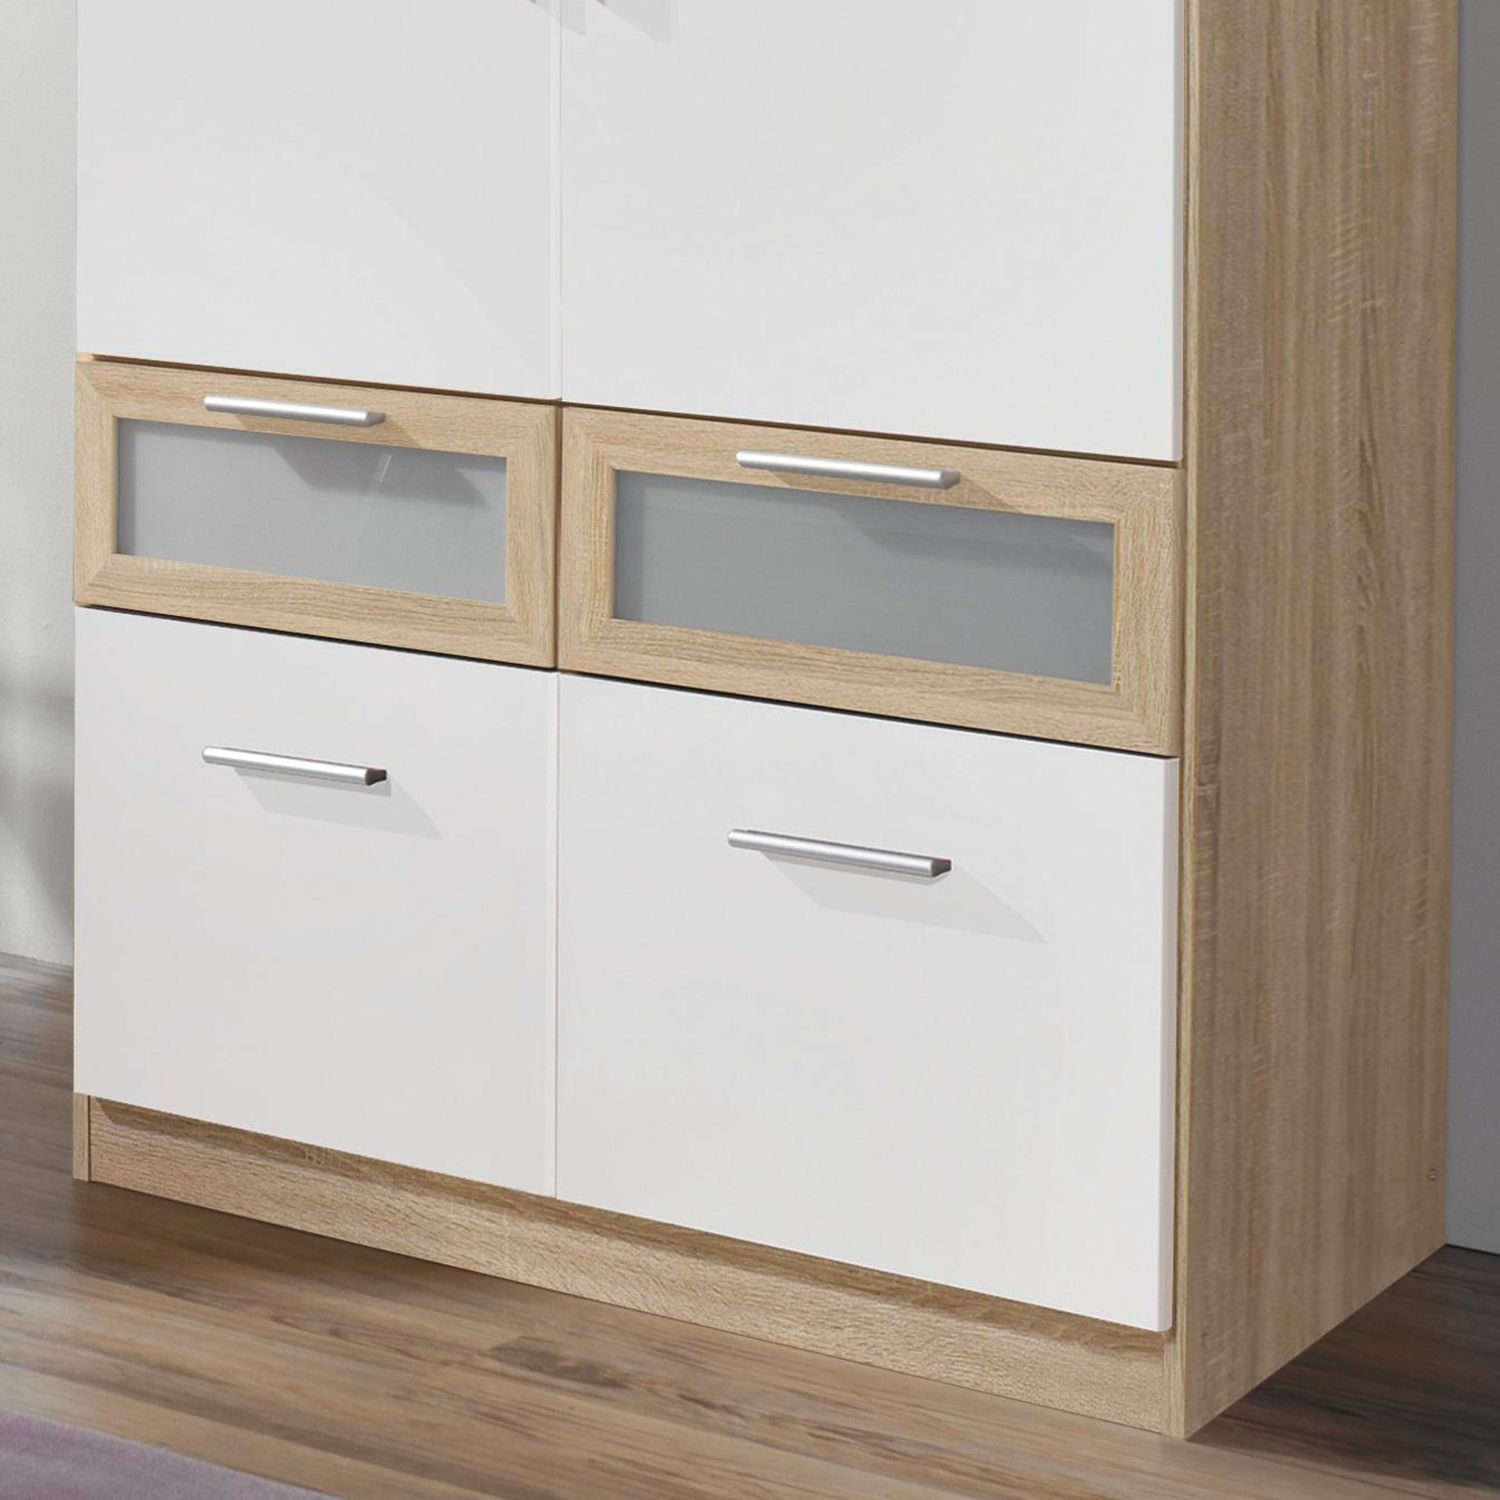 schrank 1 40 breit kommode breit schonheit malm serie with schrank 1 40 breit perfect m breit. Black Bedroom Furniture Sets. Home Design Ideas